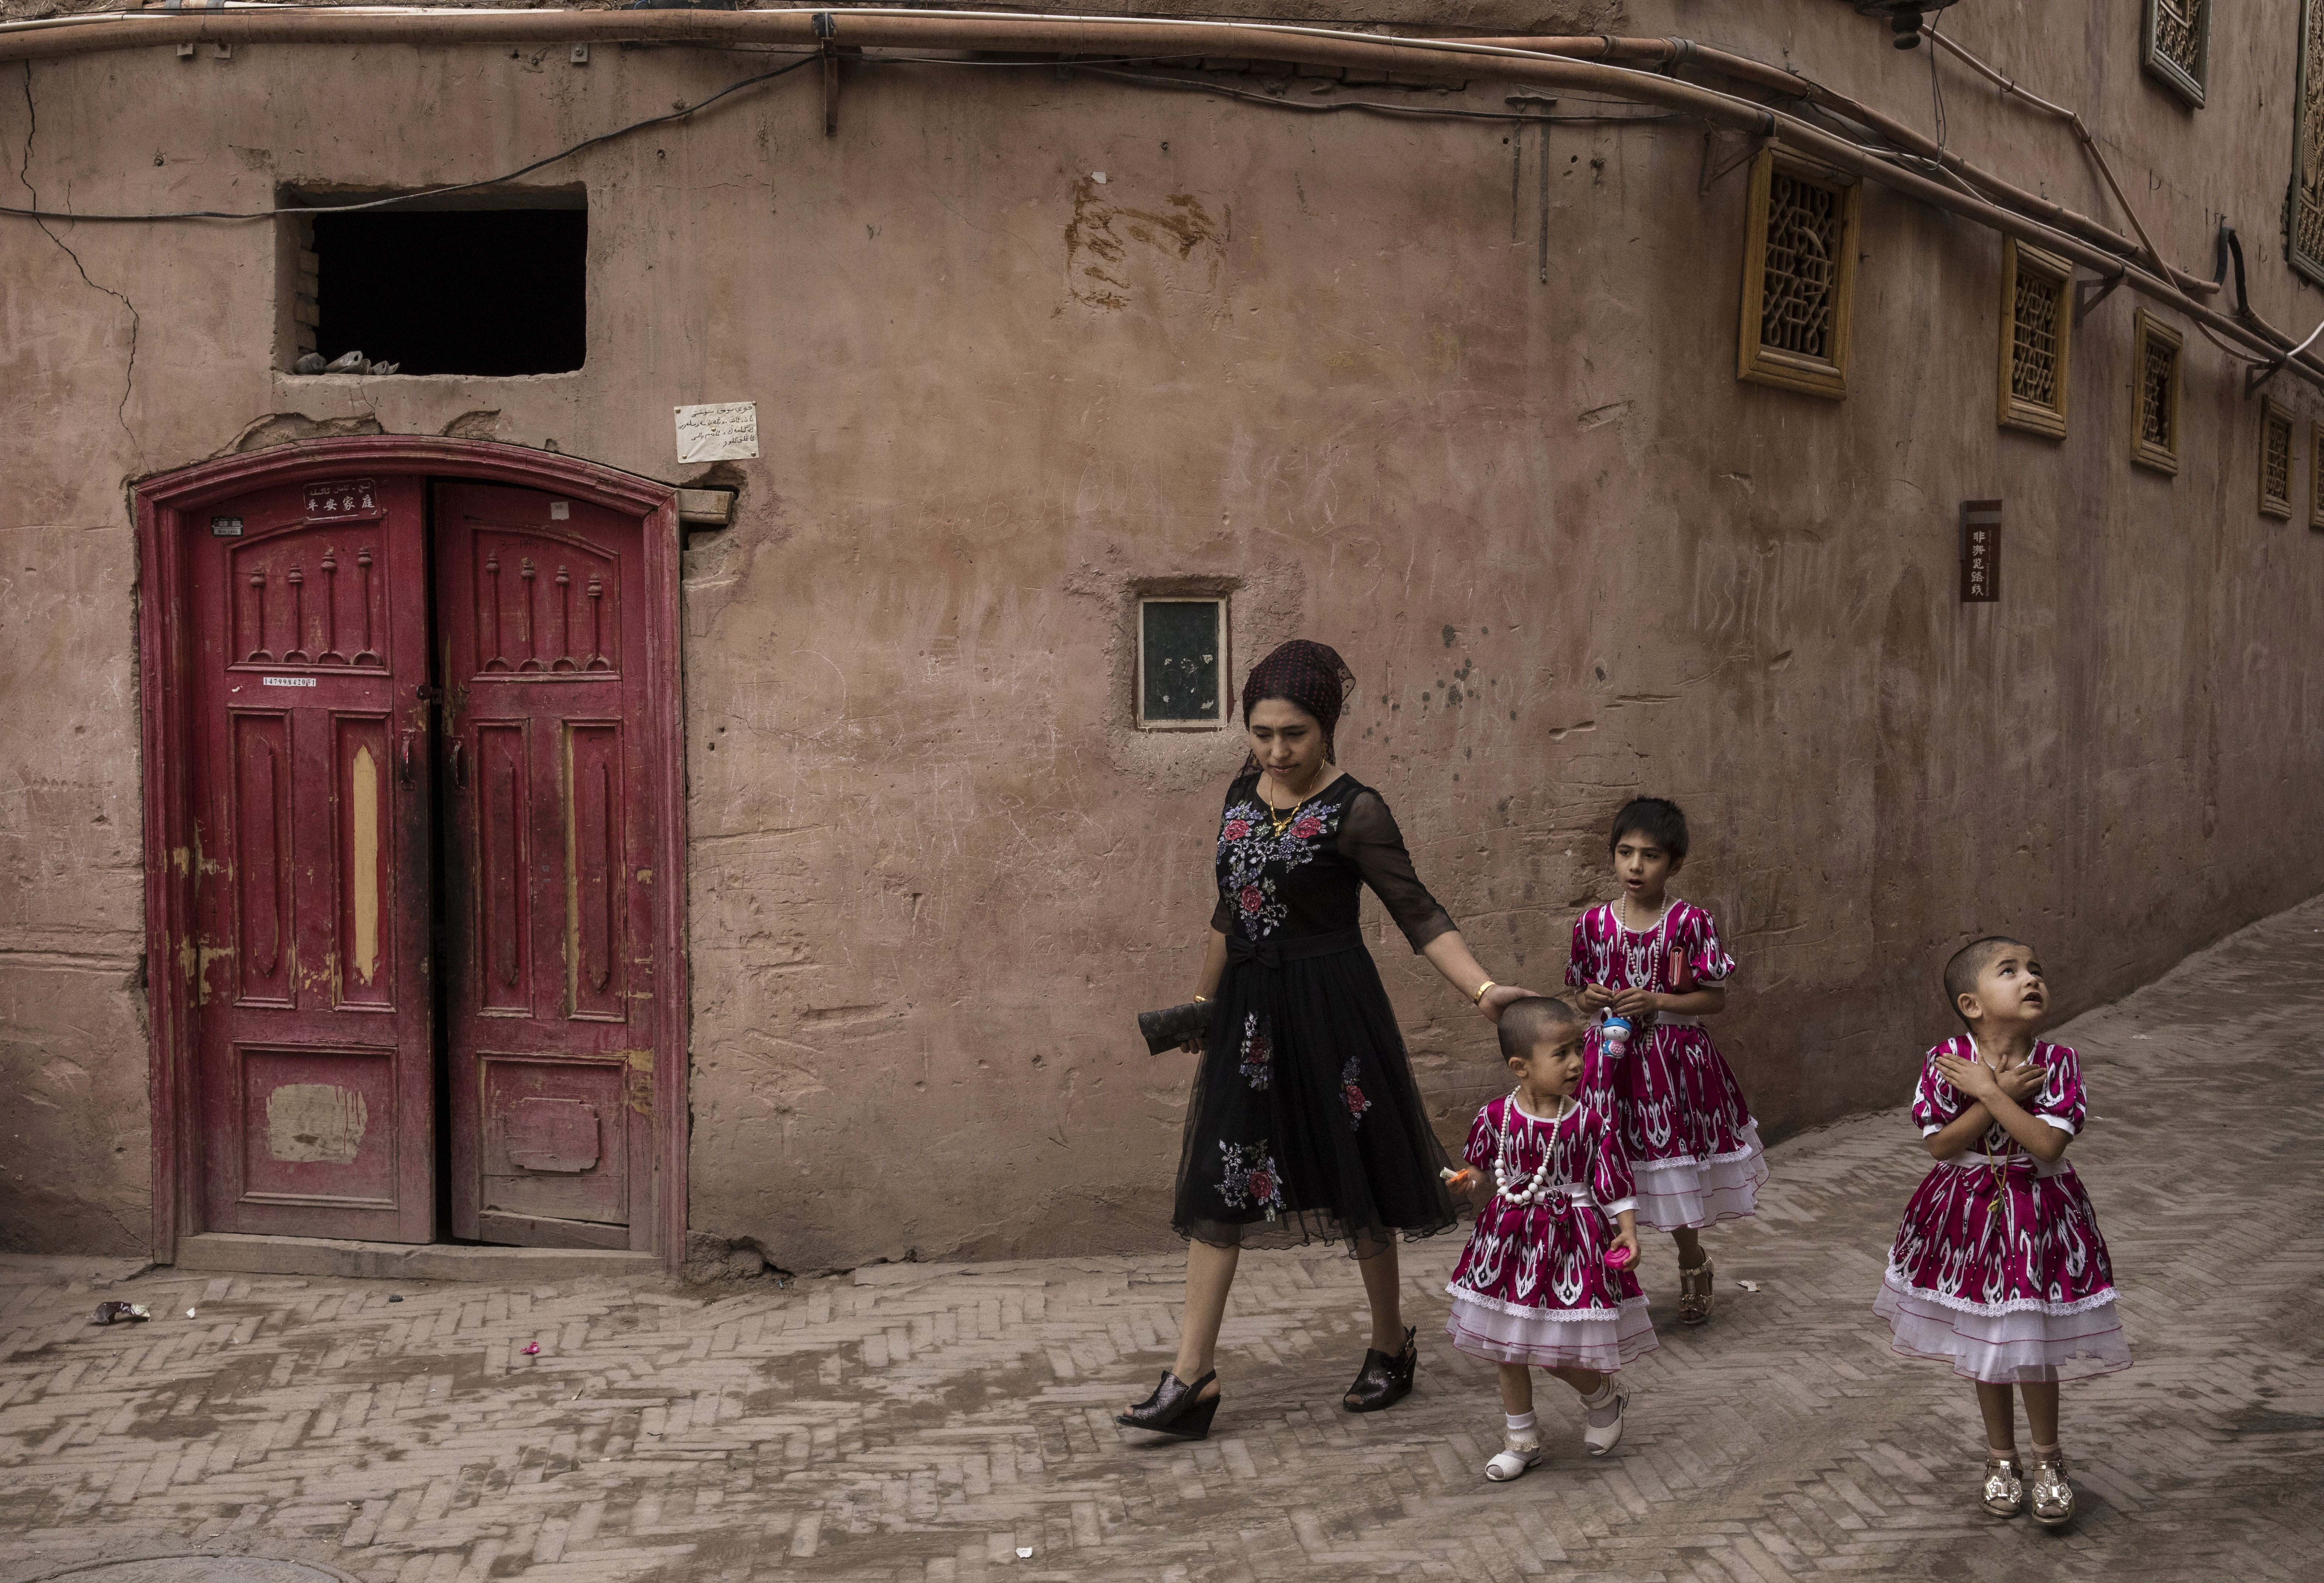 An ethnic Uighur woman walks with her children in Kashgar, Xinjiang, on June 28, 2017.